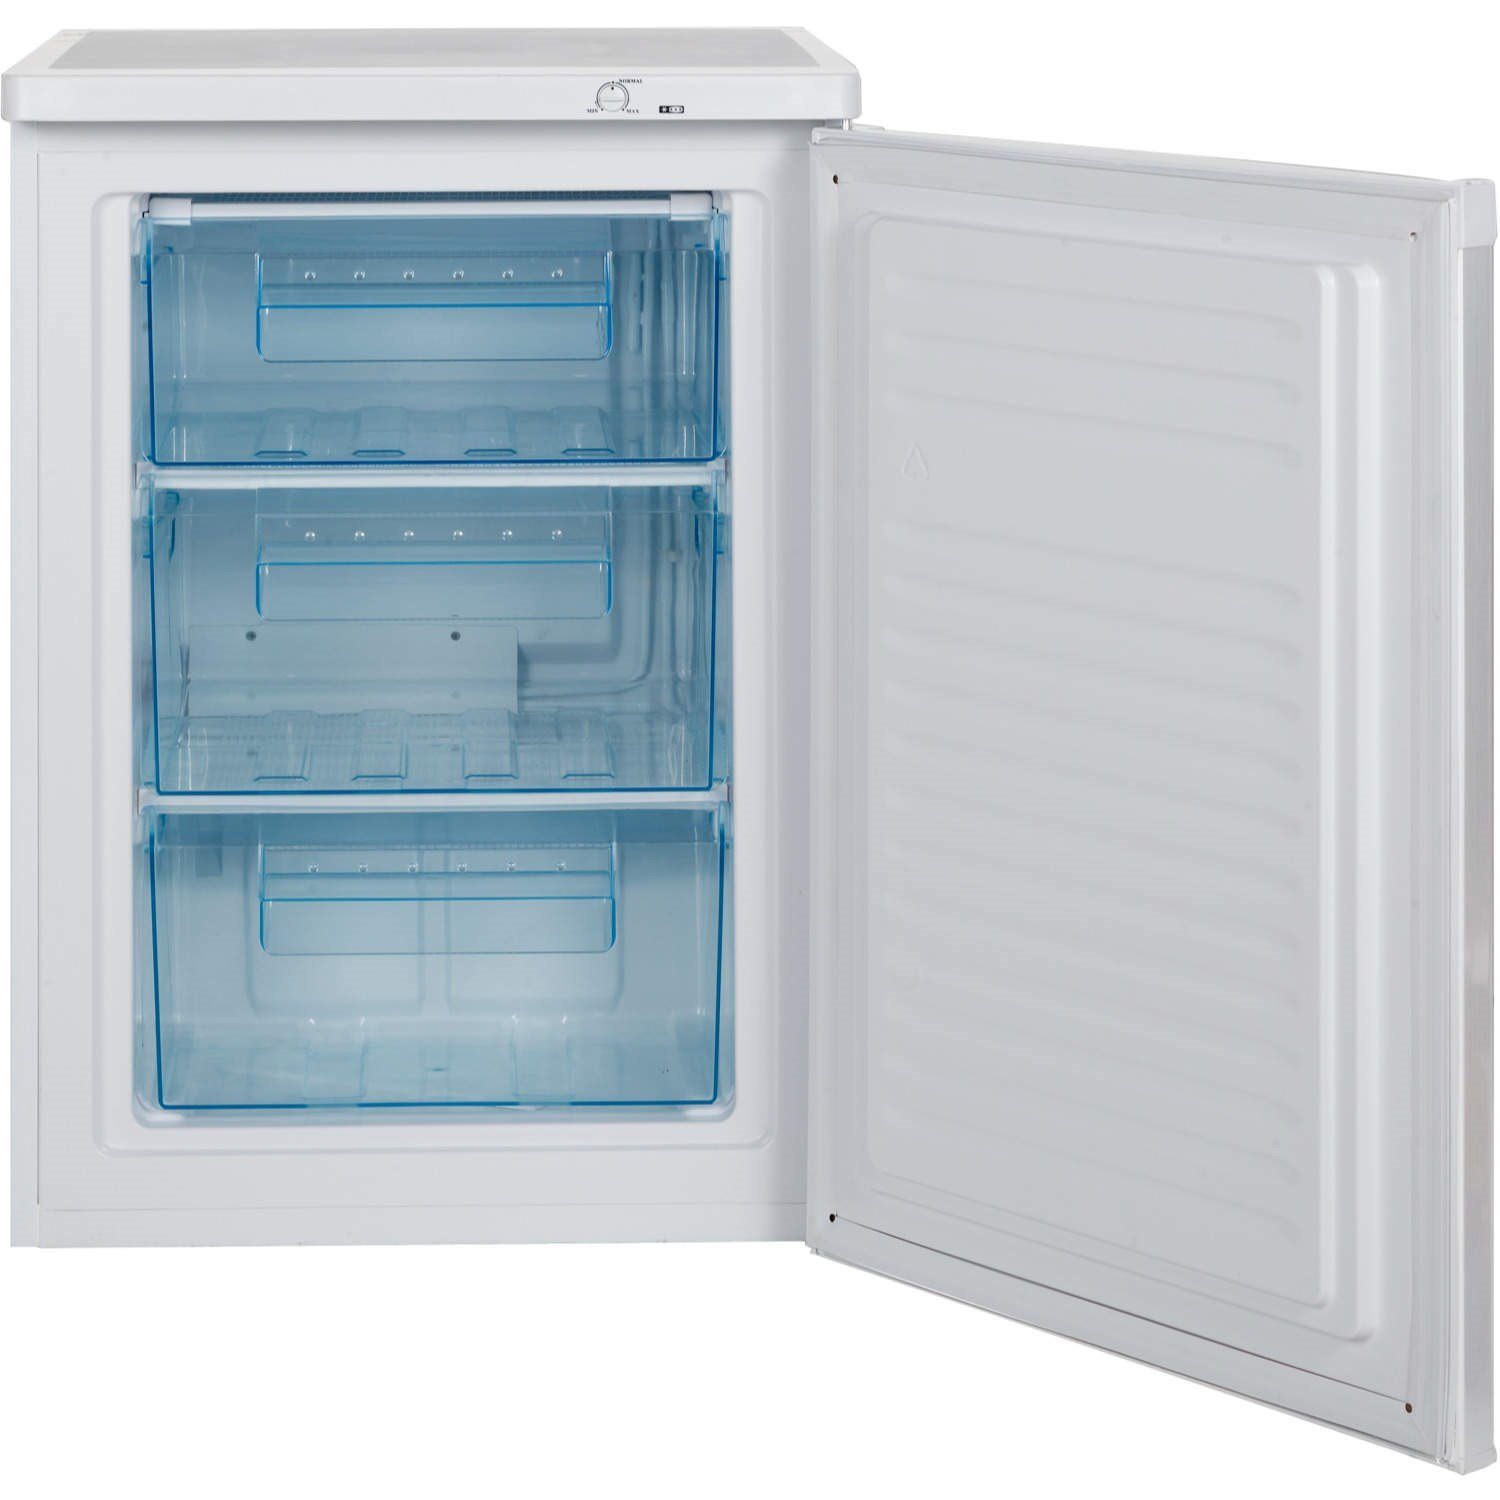 LEC U6014 60cm Wide Freestanding Upright Under Counter Freezer - White